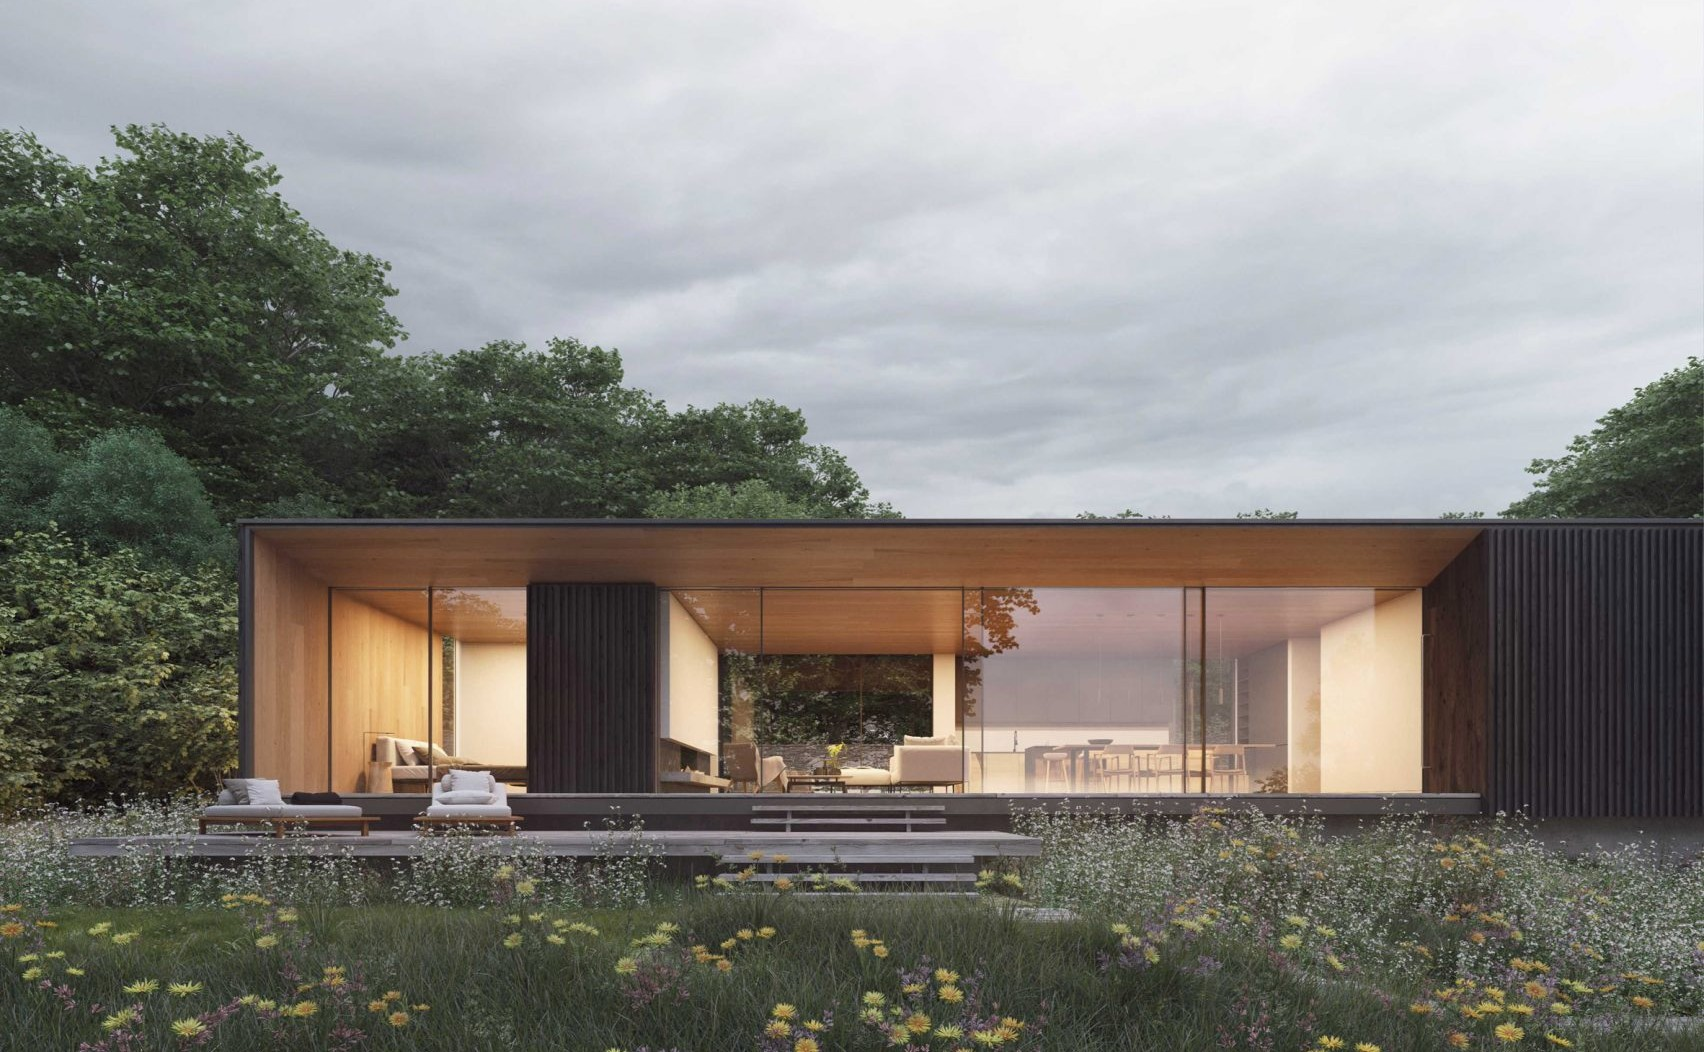 island-retreat-strom-architecture-residential-uk-england-seaside_dezeen_2364_col_0-1704x1136